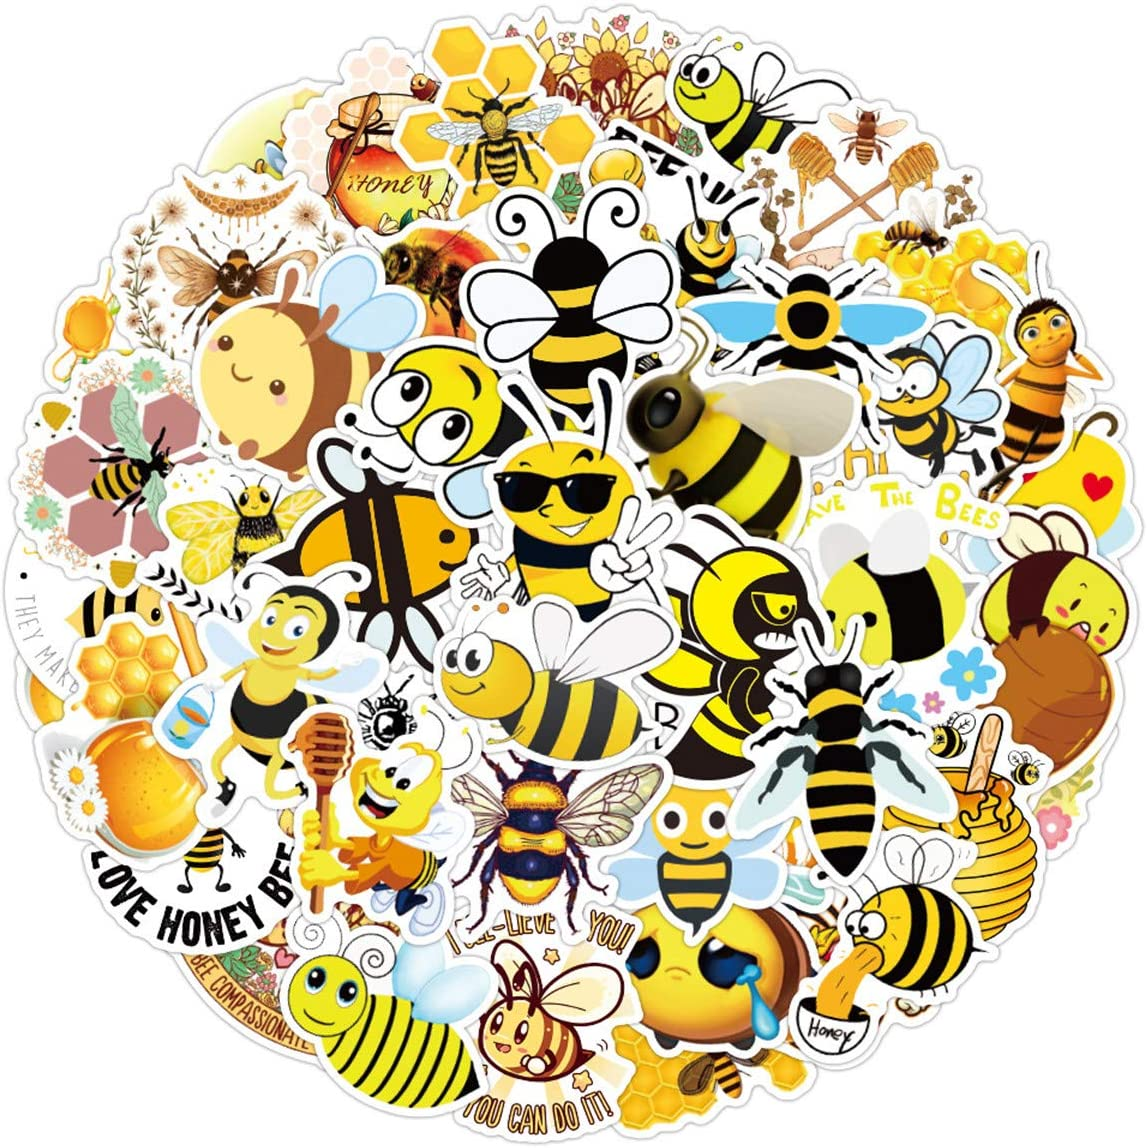 50PCS Honey bee Stickers for Laptop and Computer, Anime Cartoon Waterproof Vinyl Stickers for Water Bottle Hydro Flask Car Bumper Luggage,Cute Graffiti Decals for Teens Girls Boys Adults (Honey bee)